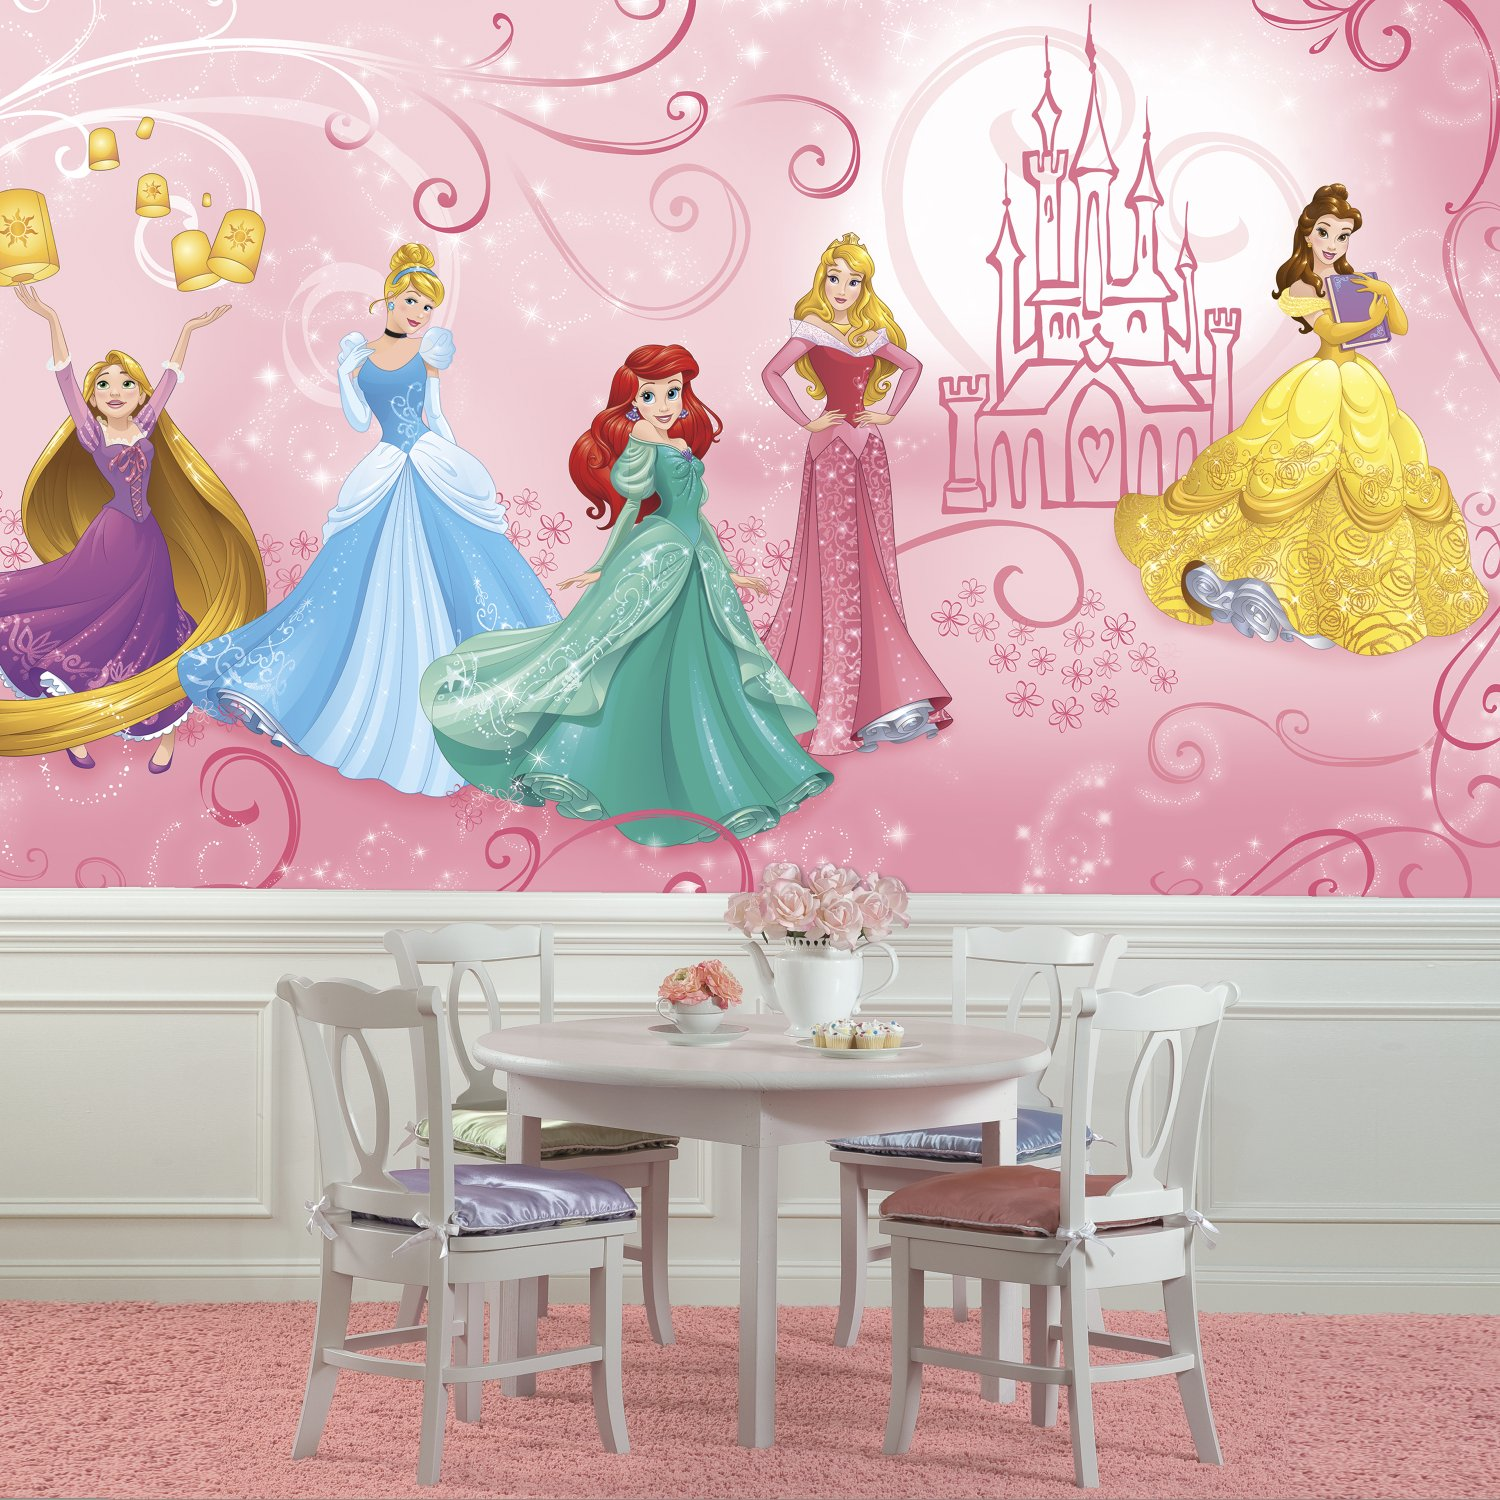 RoomMates JL1388M Disney Princess Enchanted XL Chair Rail Prepasted Mural 6 X 10.5 Ultra-Strippable Multicolor York Wallcoverings